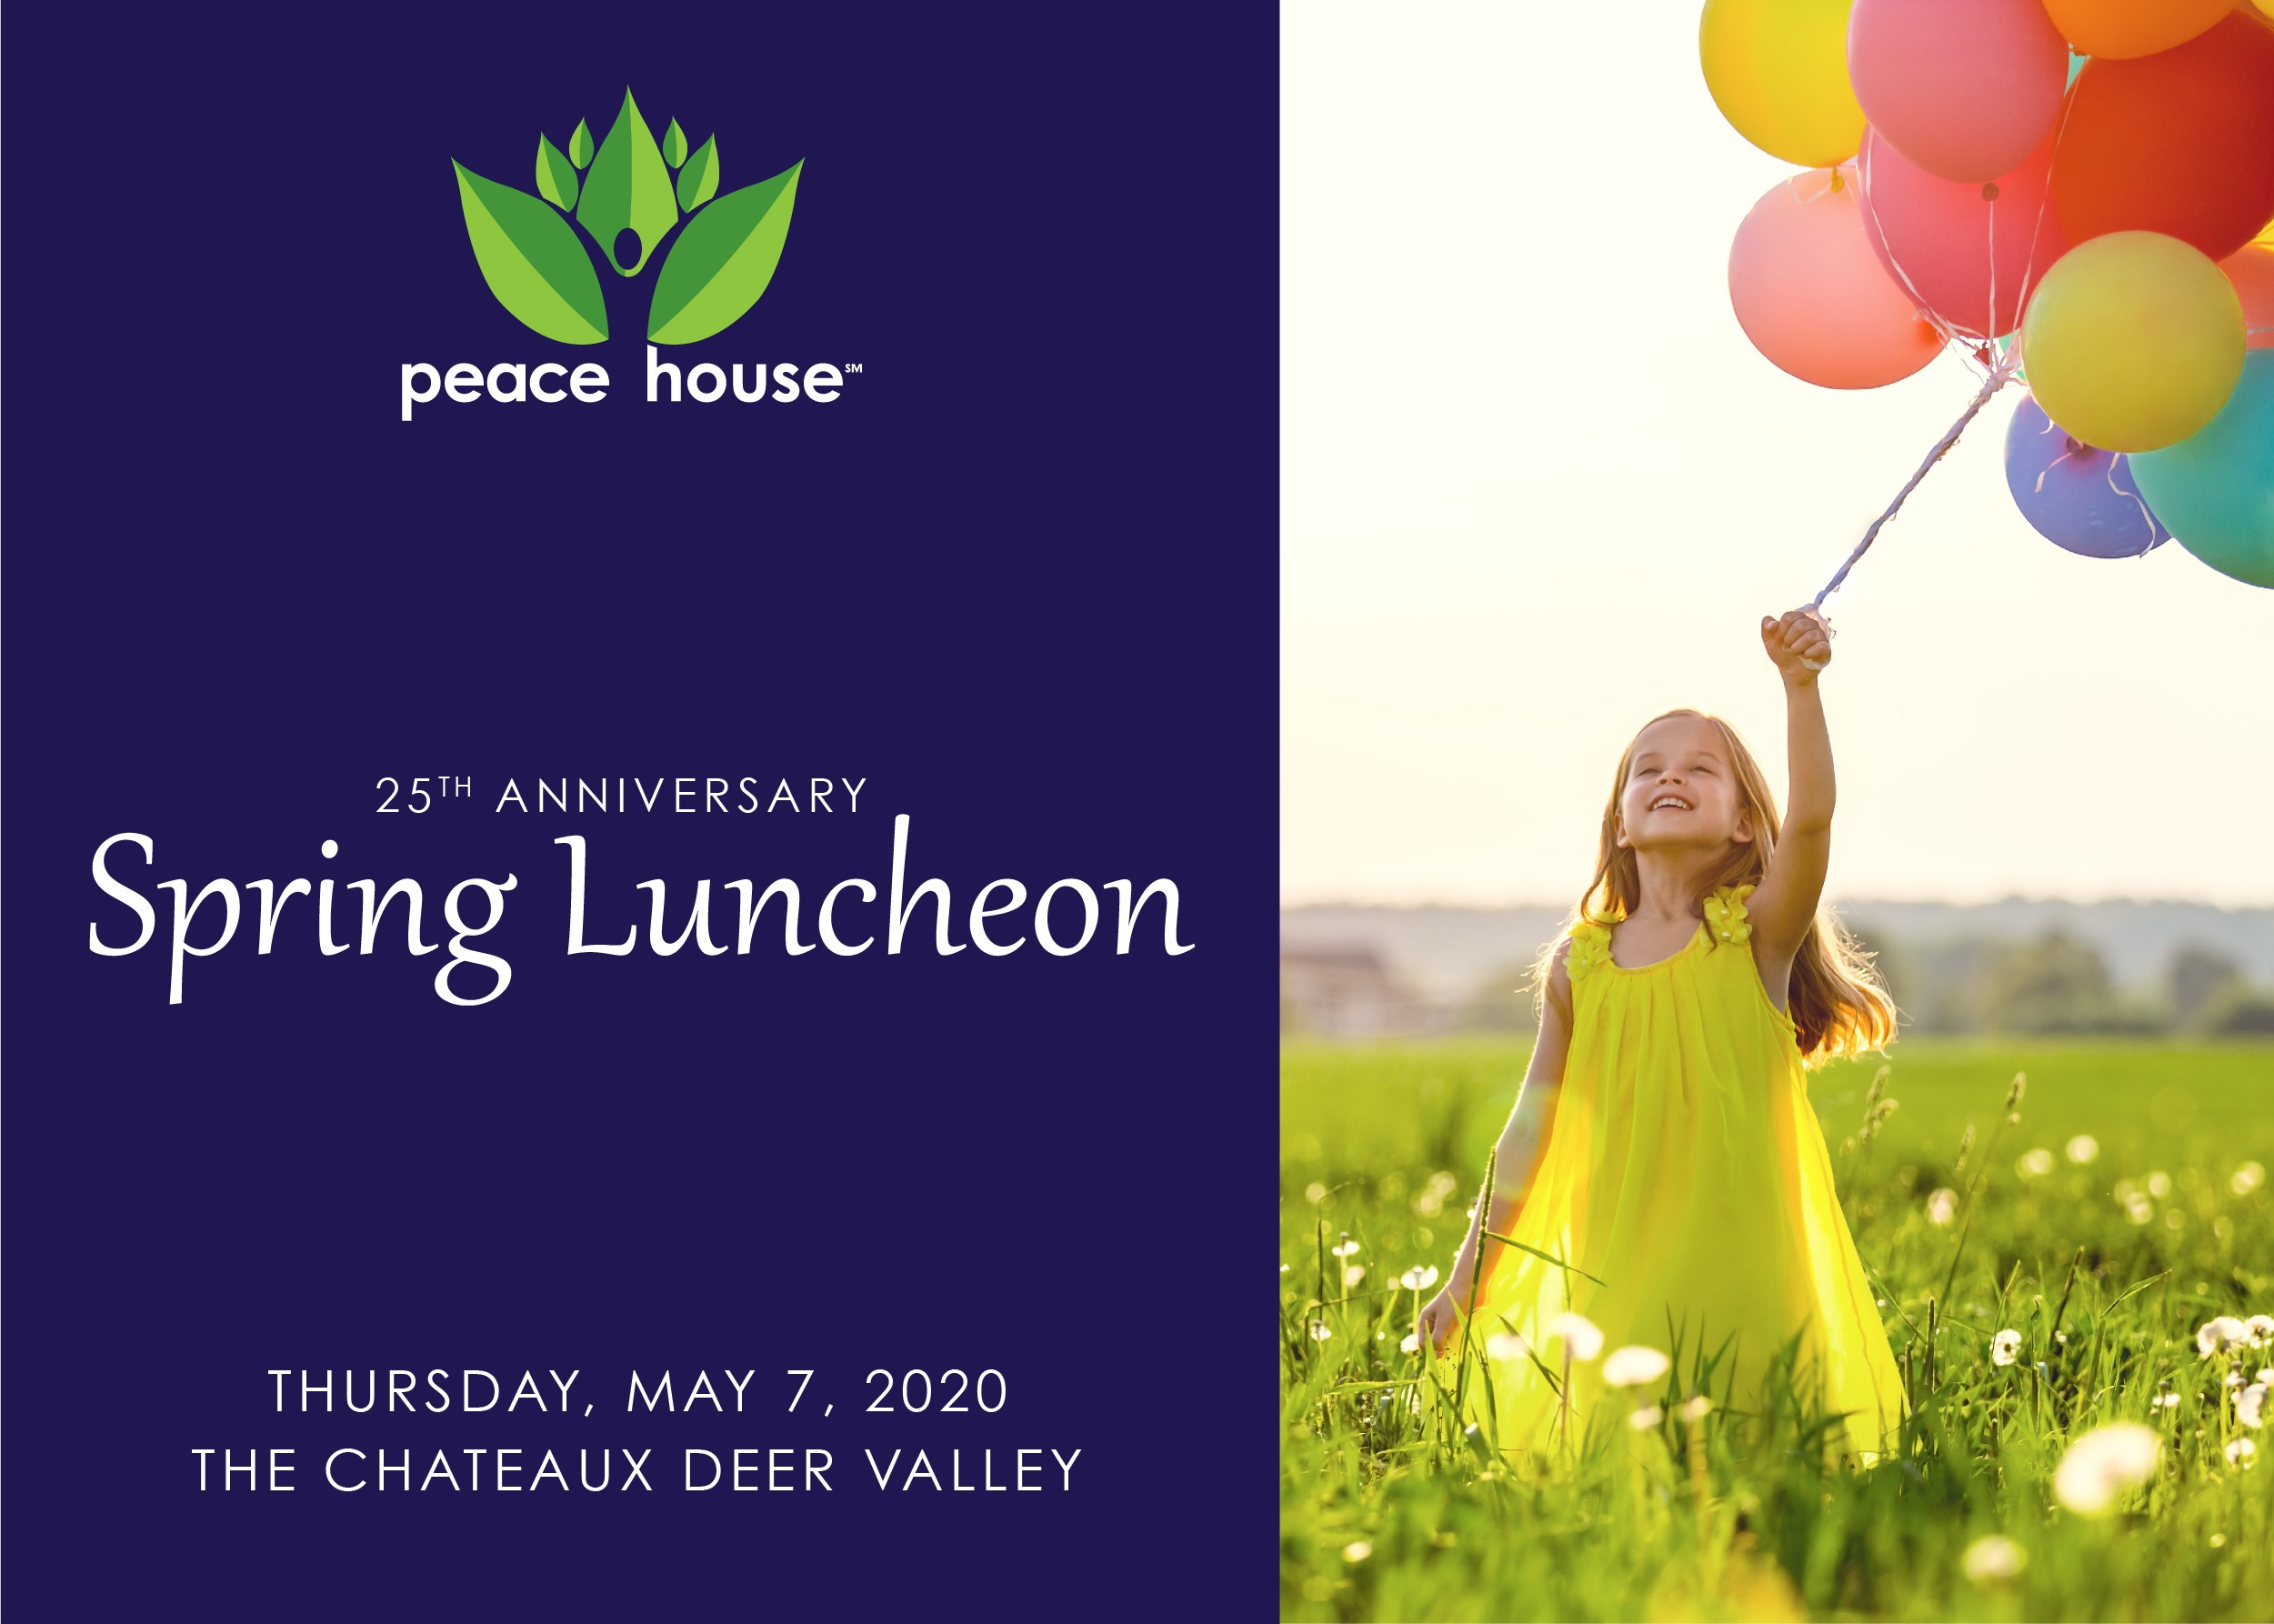 Spring Luncheon and Peace House 25th Anniversary